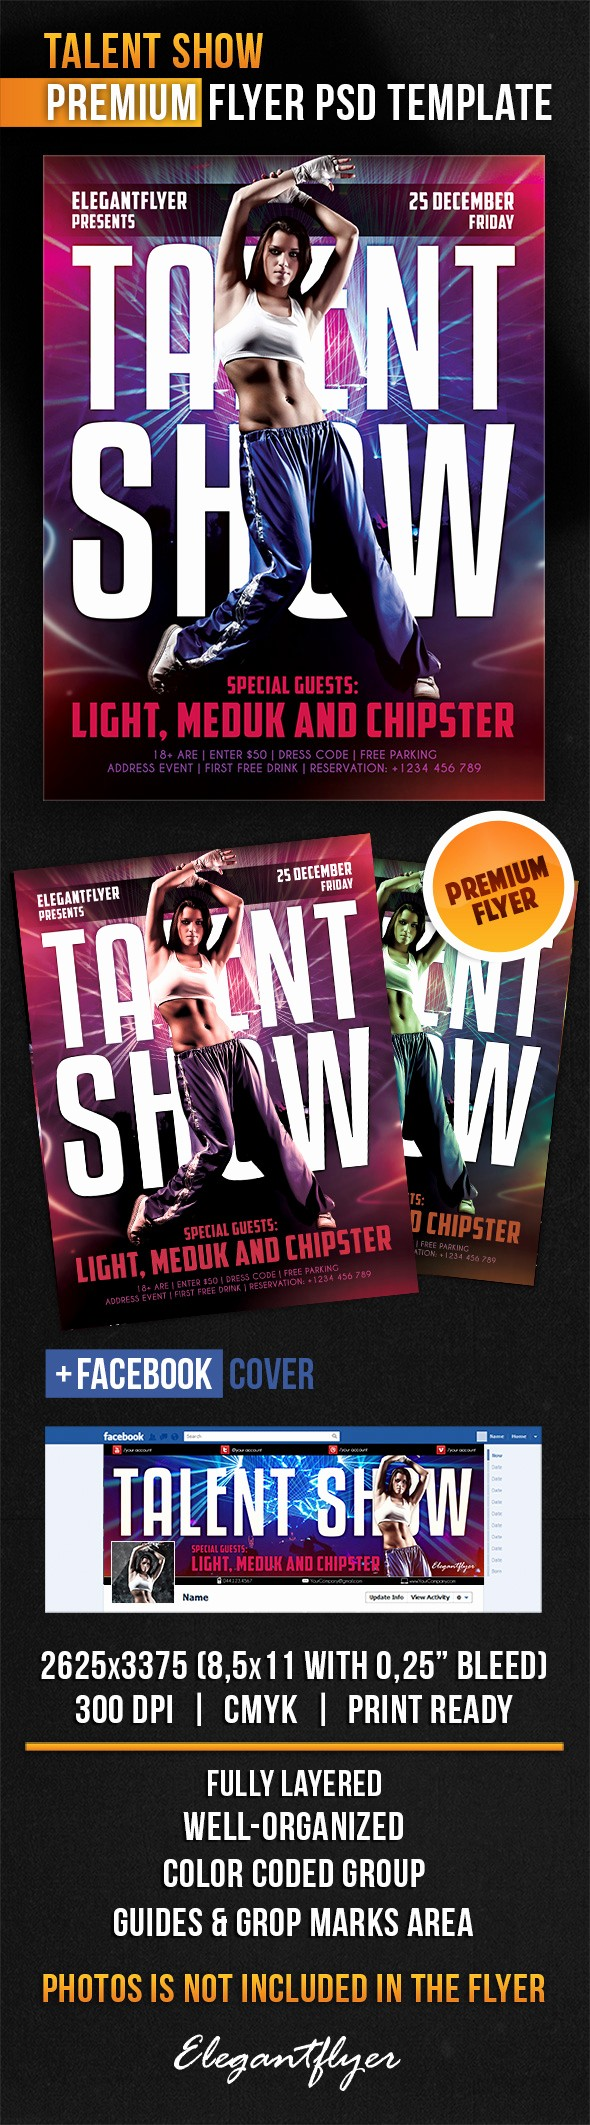 Free Talent Show Flyer Template Unique Talent Show – Flyer Psd Template – by Elegantflyer